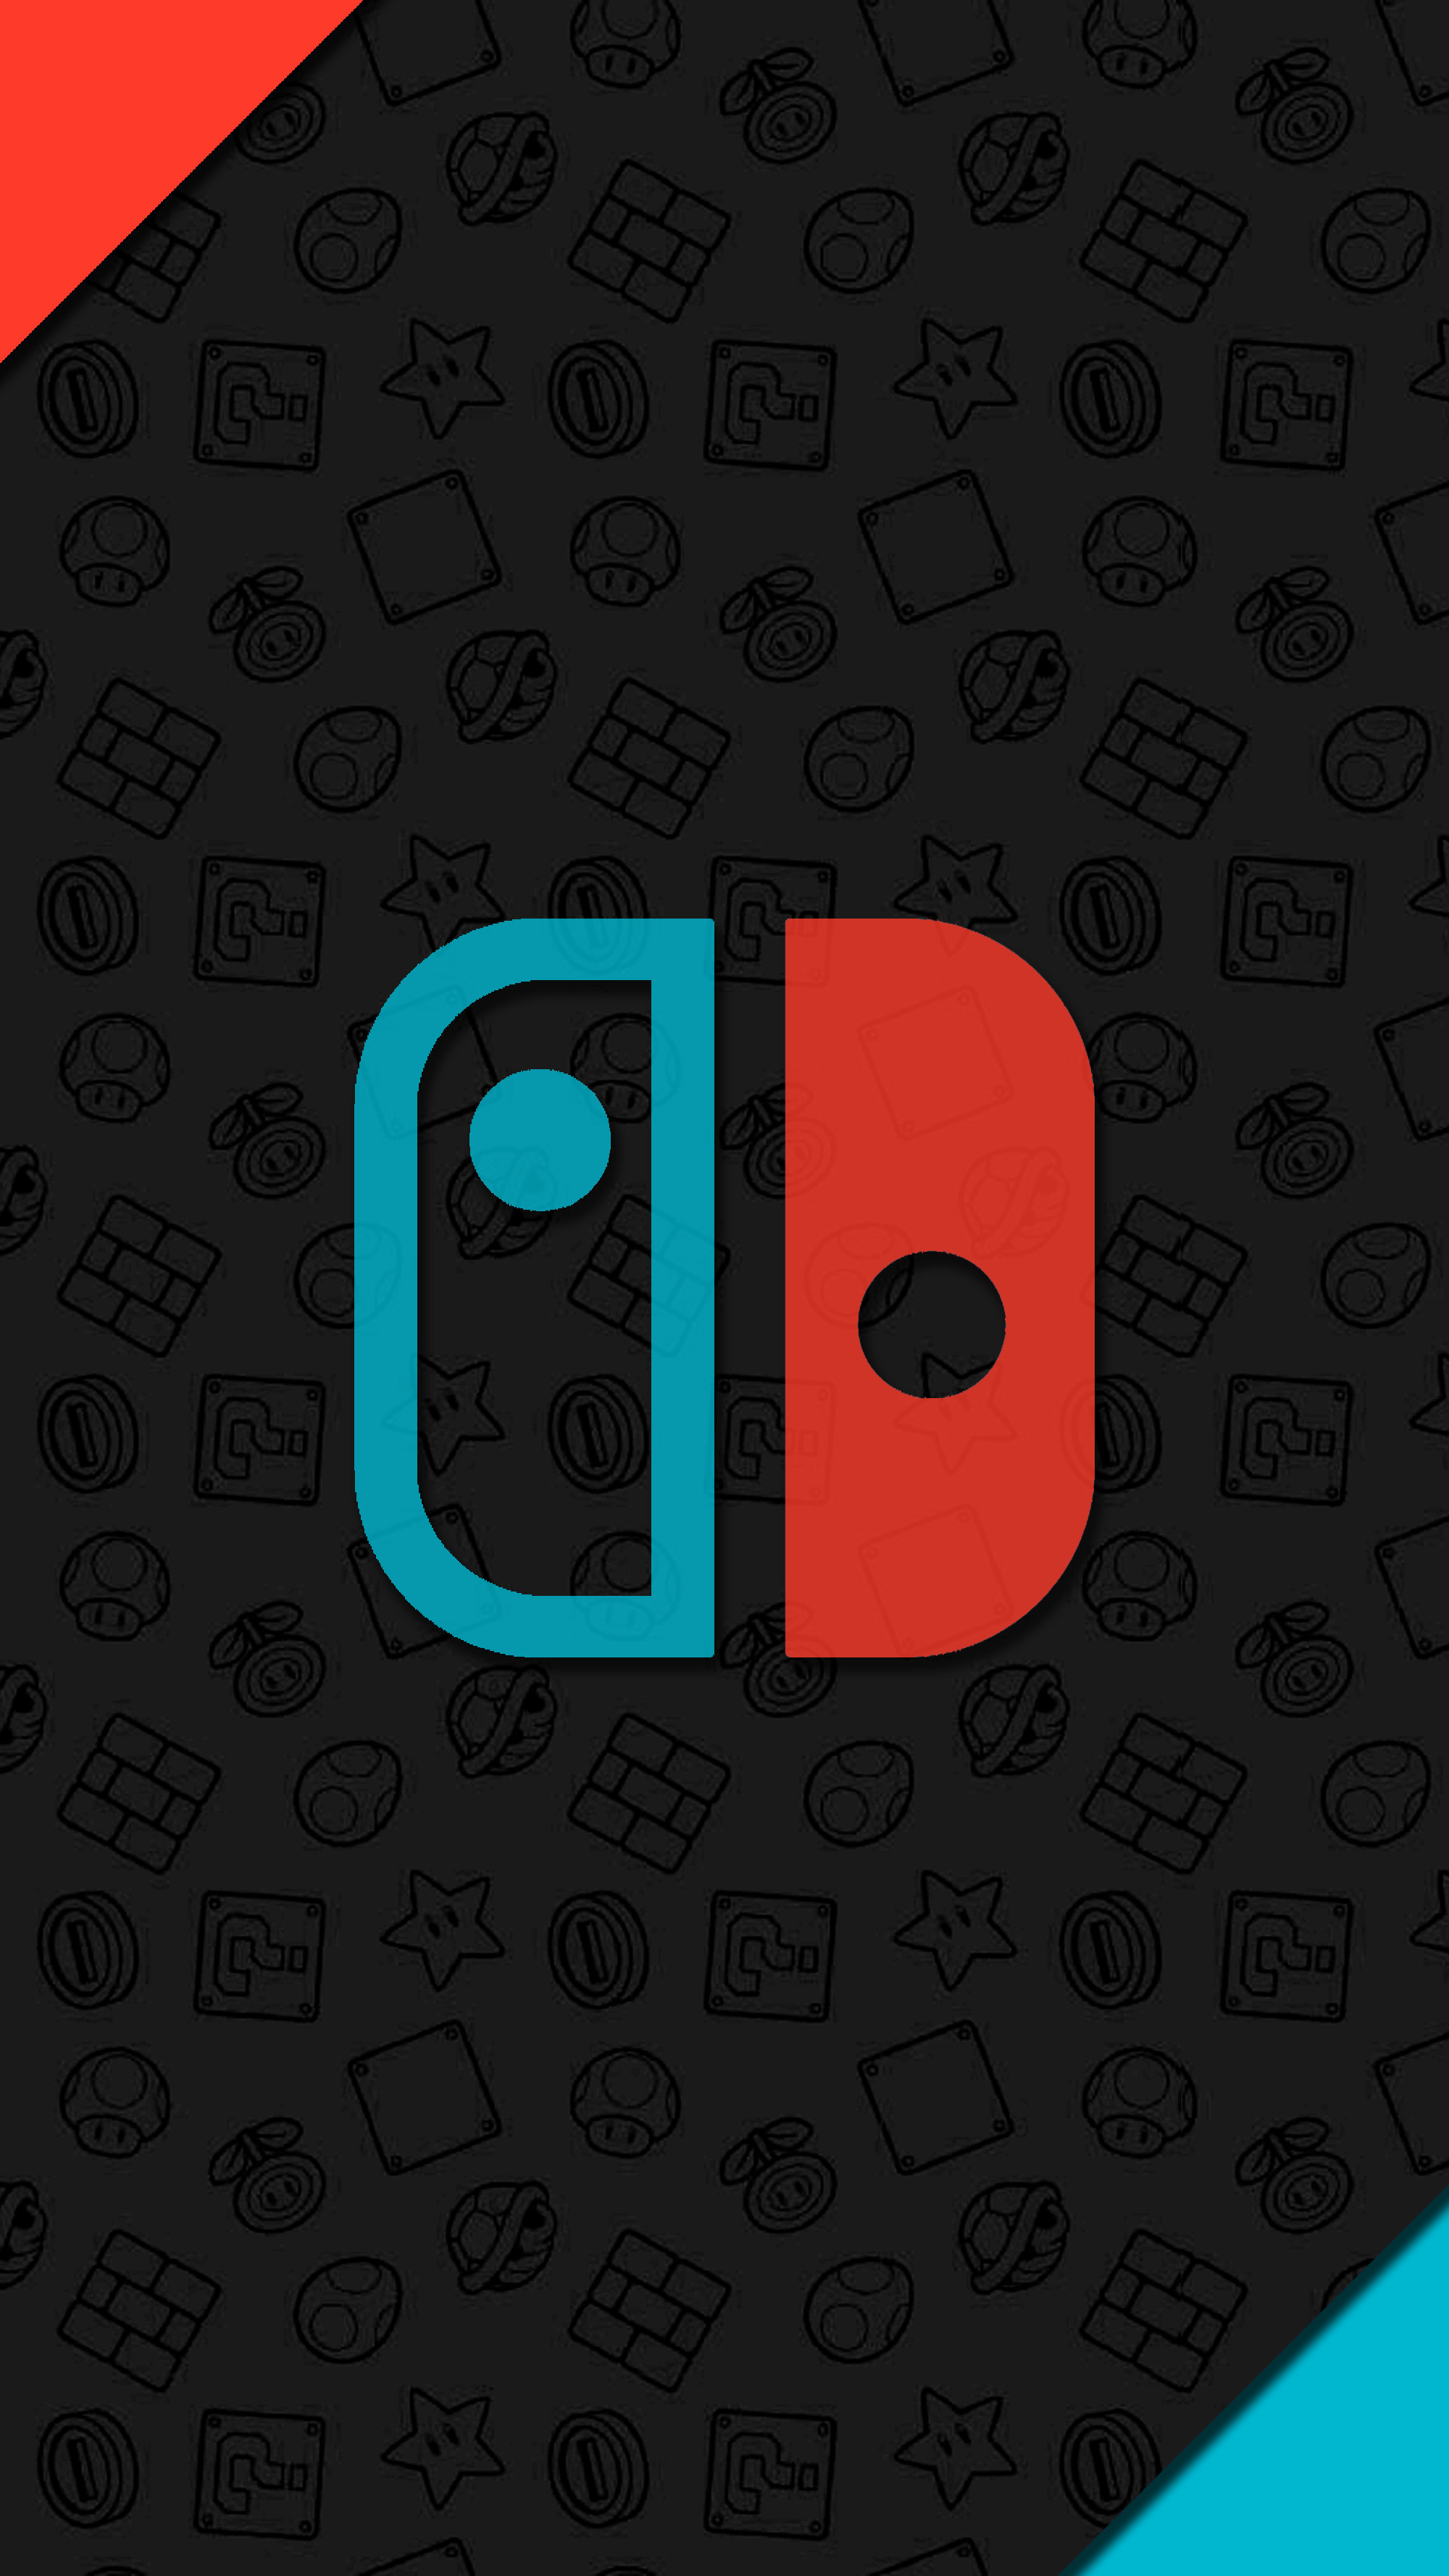 Nintendo iPhone 6 Wallpaper 68 images